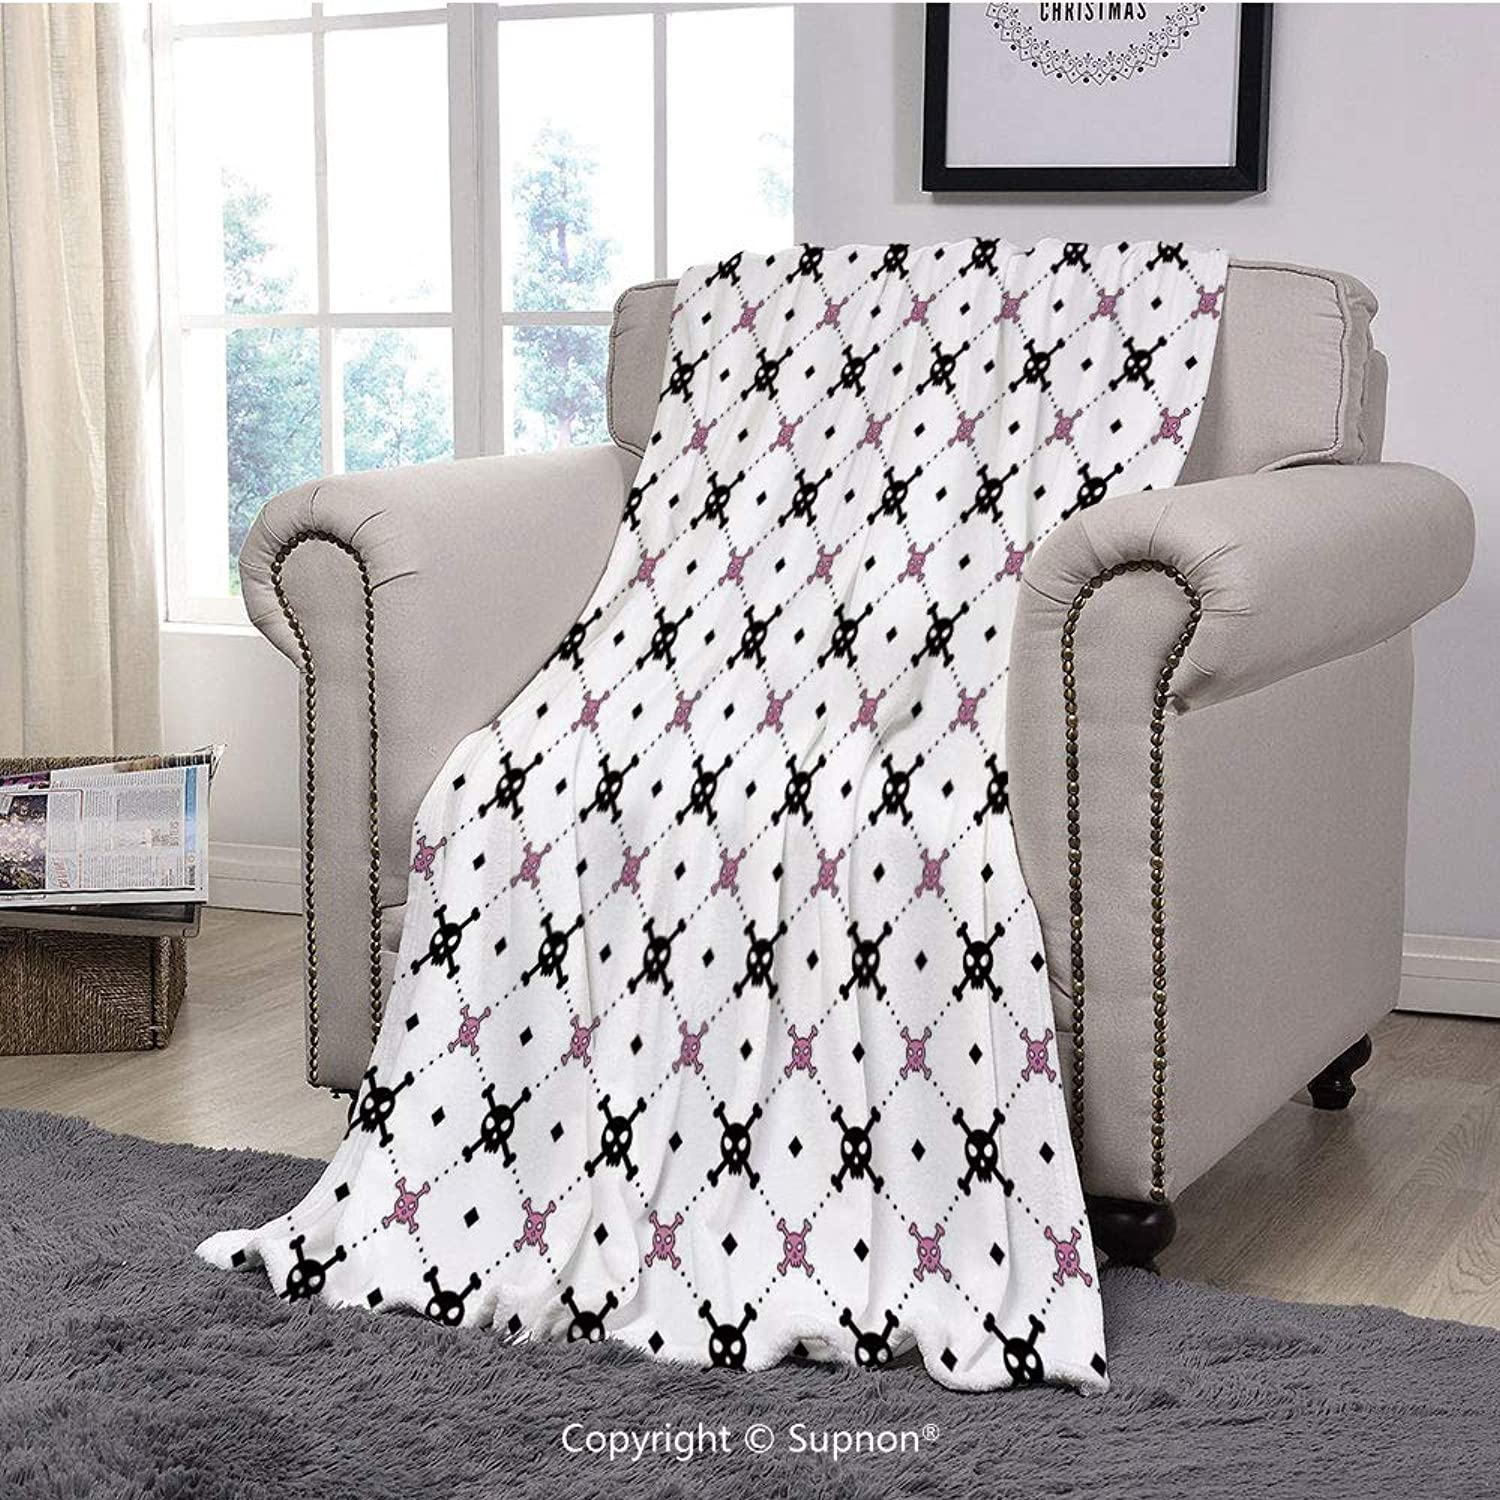 BeeMeng Printing Blanket Coral Plush Super Soft Decorative Throw Blanket,Skulls Decorations,Girly Skull and Crossbones Pattern in Simple Artistic Design Decorative(59  x 59 )